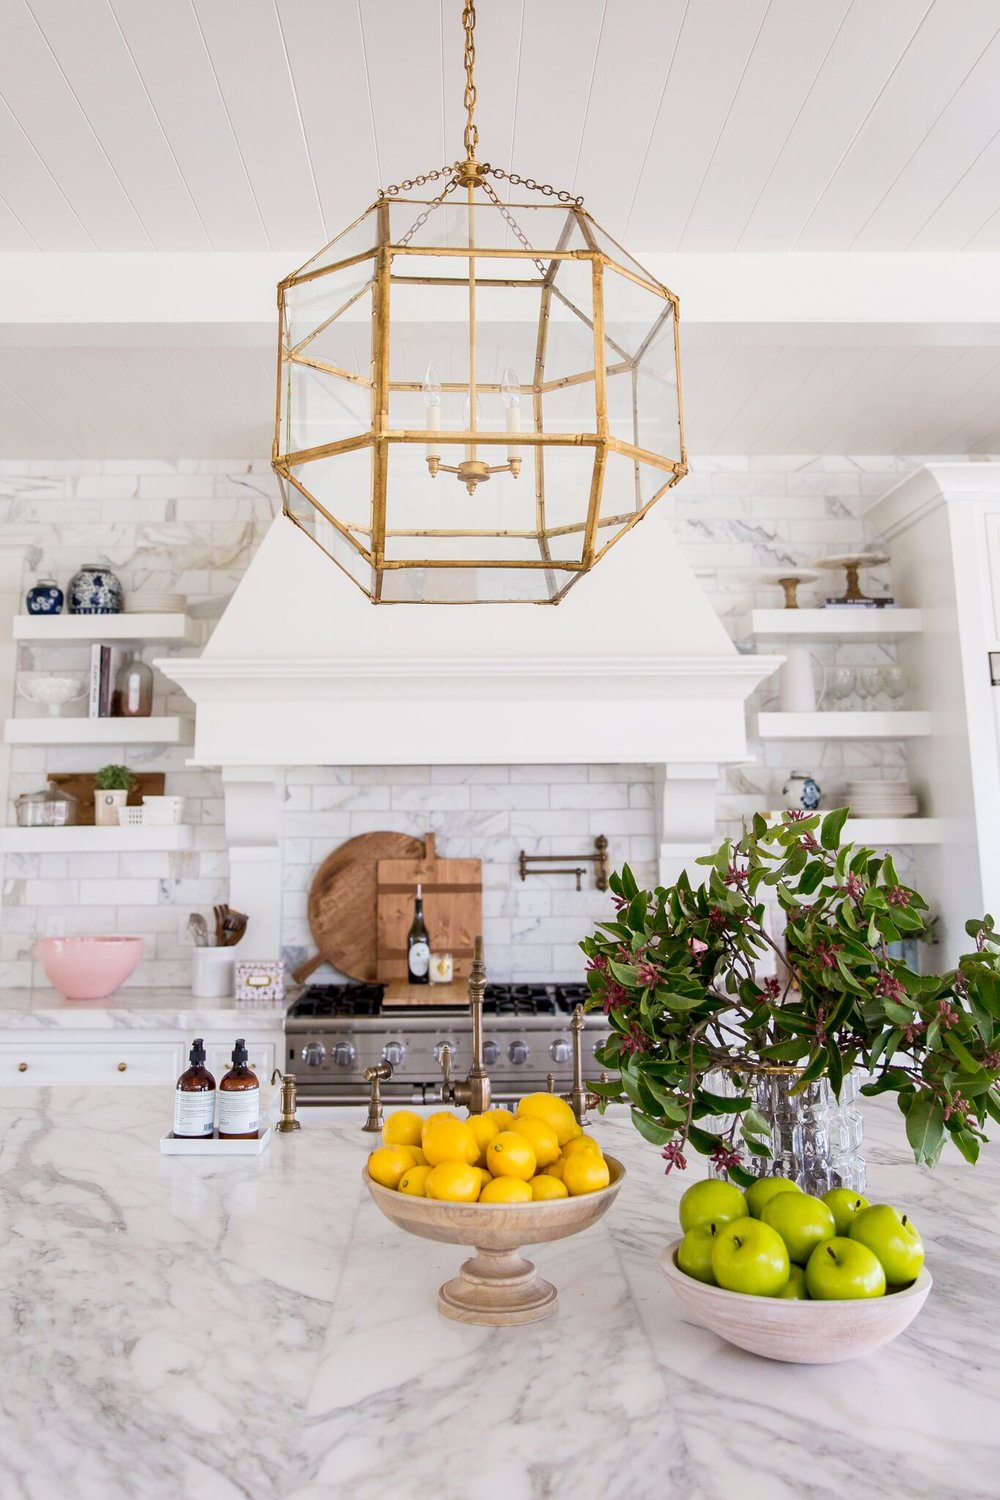 Spring Kitchen with Rach Parcell — STUDIO MCGEE